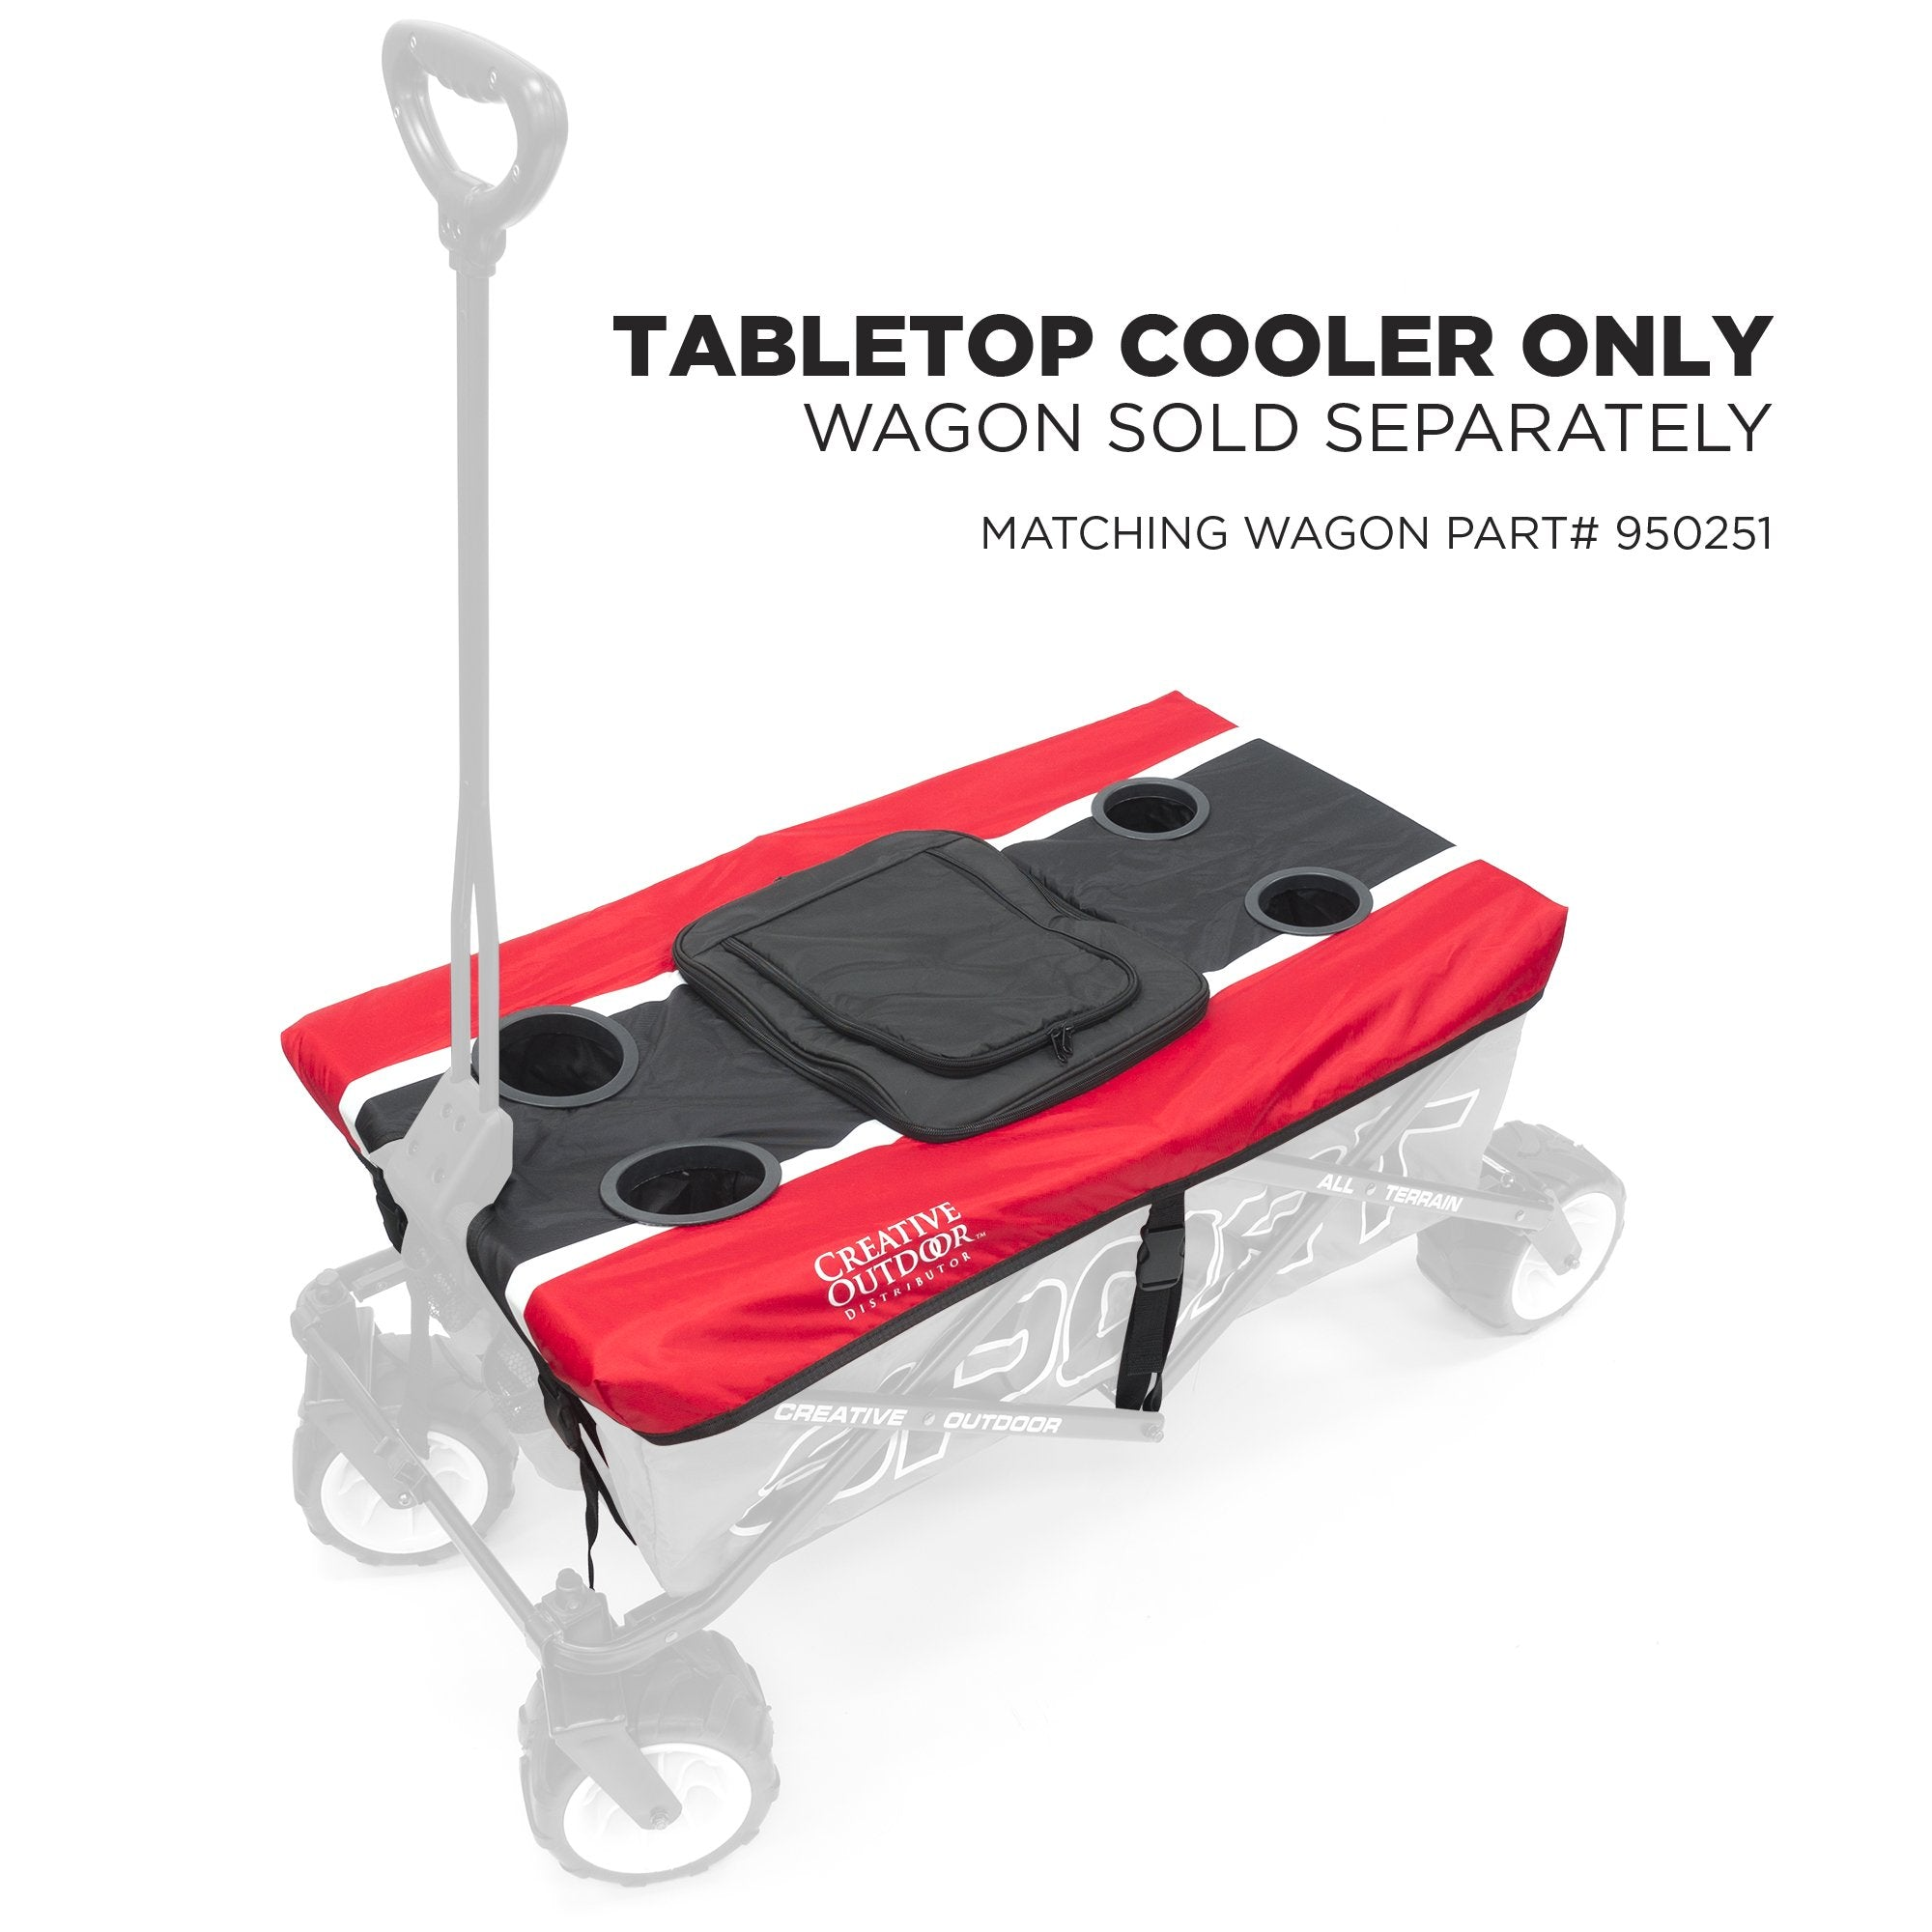 All-Terrain SPORT Folding Wagon Tabletop Cooler Accessory | Red Black